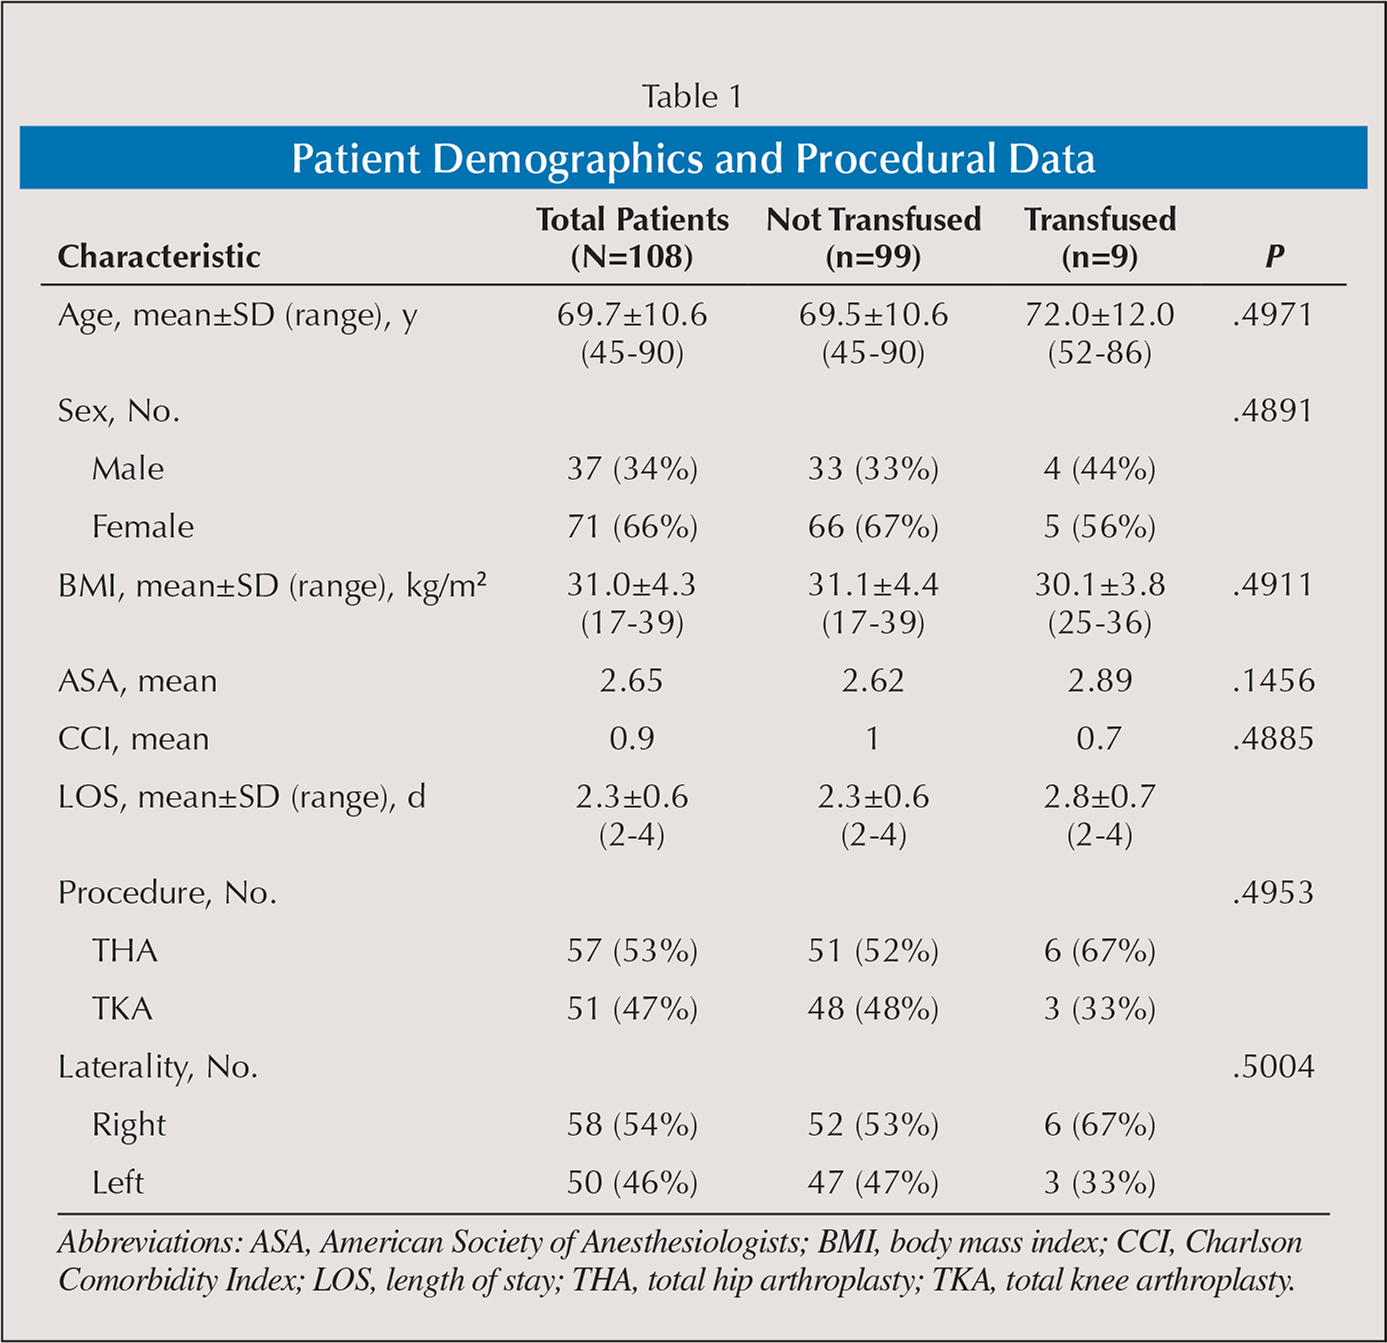 Patient Demographics and Procedural Data